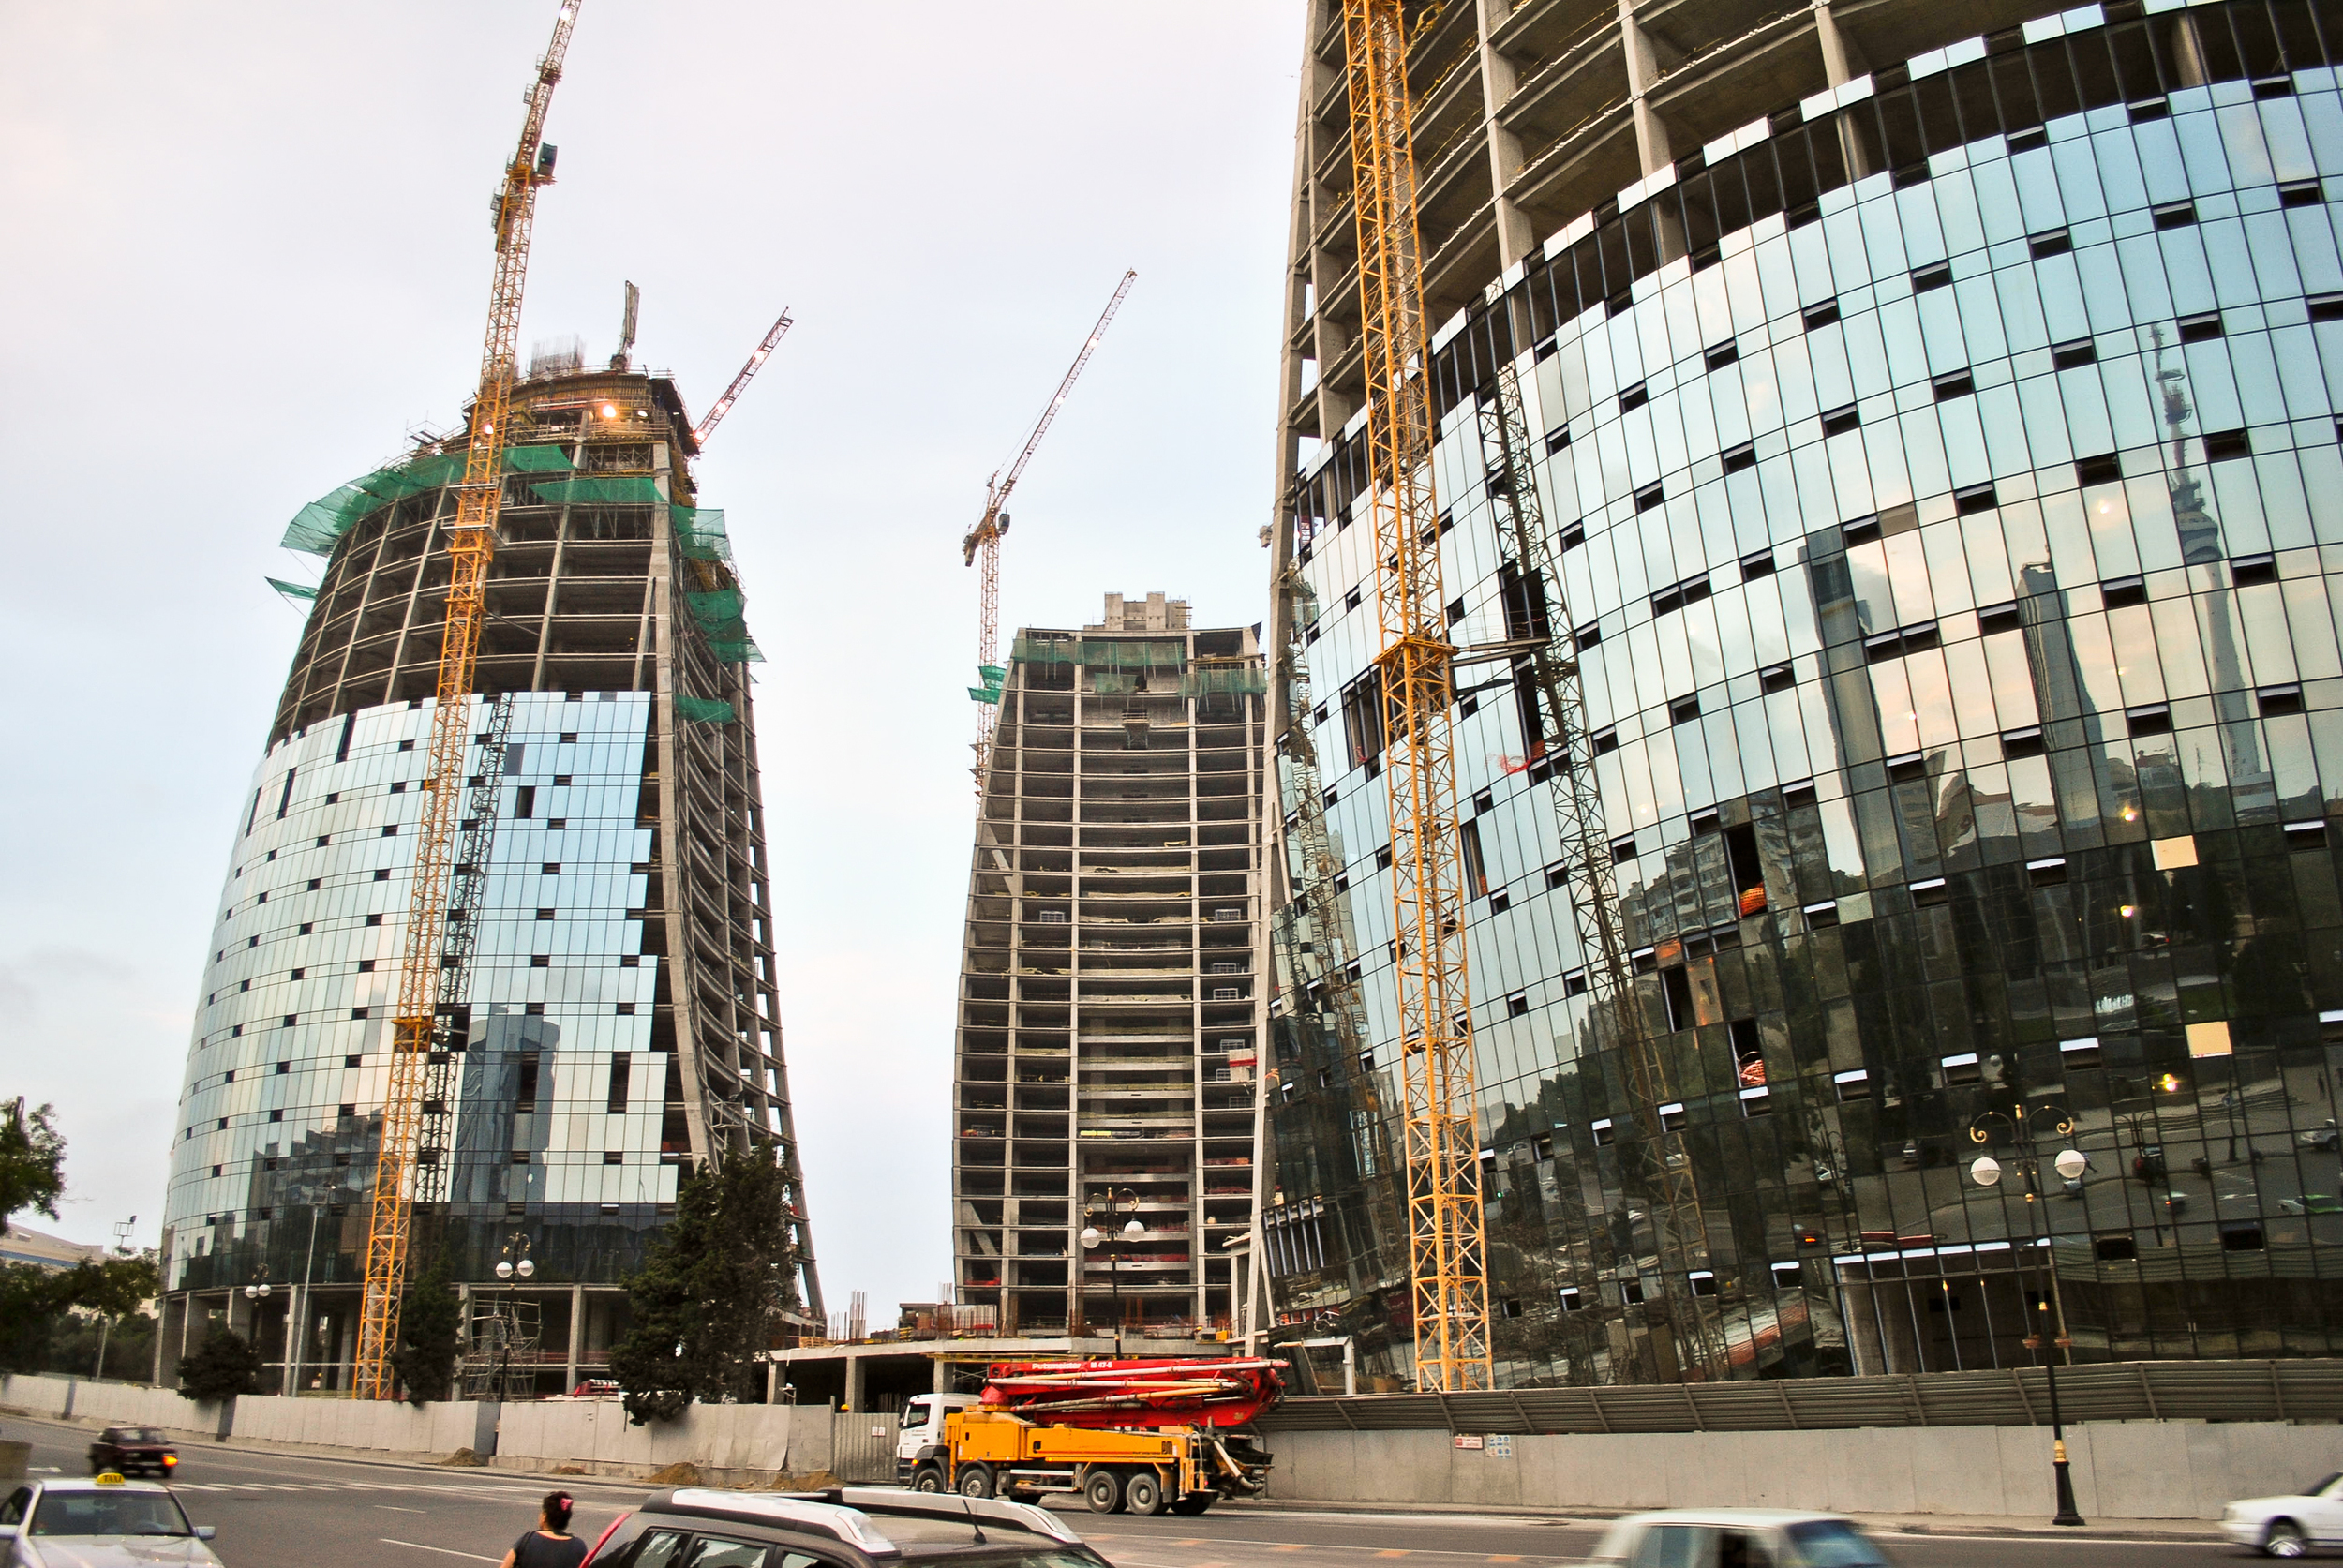 The soon to be finished Flame Towers - just another example of the glisty new architecture that has sprouted out of the capital Baku during Azerbaijan's 21st century oil and gas boom.